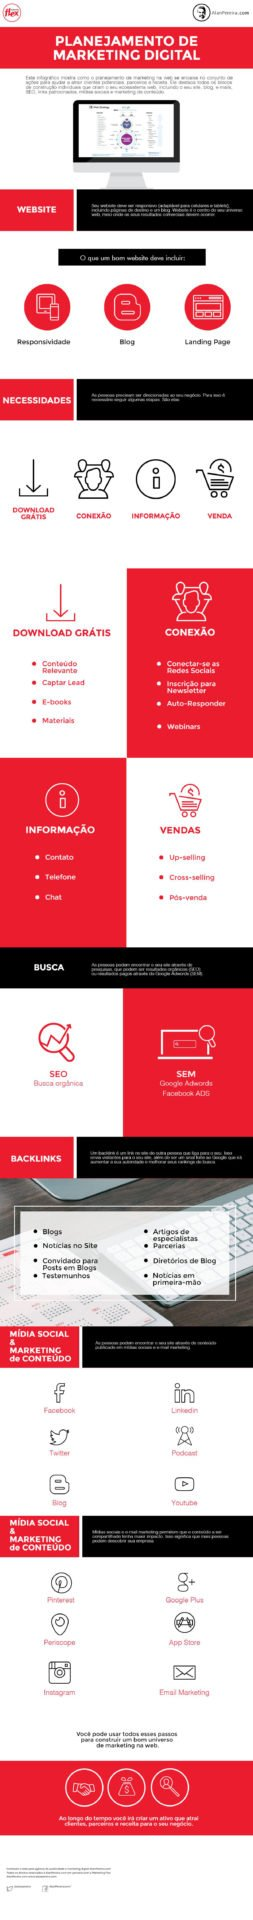 infografico-marketing-digital2016